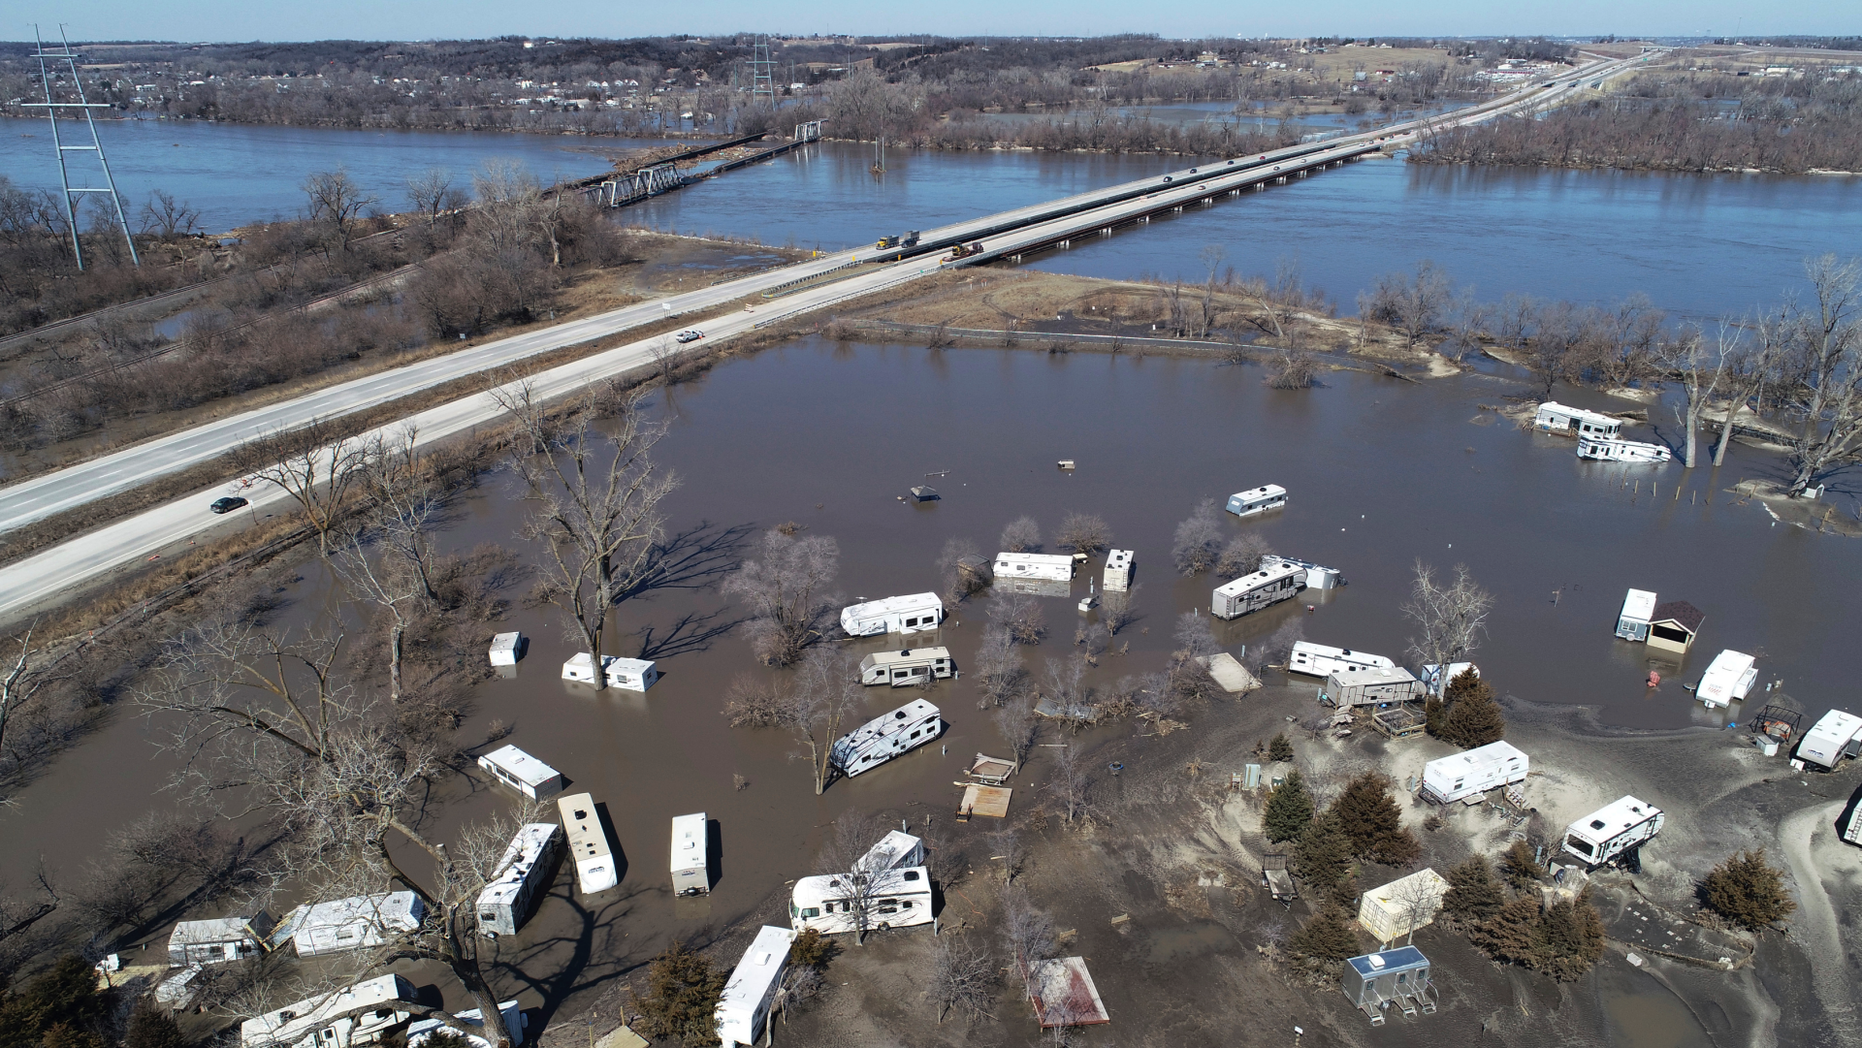 """This Wednesday, March 20, 2019 aerial photo shows flooding near the Platte River in in Plattsmouth, Neb., south of Omaha. The National Weather Service is warning that flooding in parts of South Dakota and northern Iowa could soon reach historic levels. A Weather Service hydrologist says """"major and perhaps historic"""" flooding is possible later this month at some spots on the Big Sioux and James rivers. The worst of the flooding so far has been in Nebraska, southwestern Iowa and northwestern Missouri. (DroneBase via AP)"""